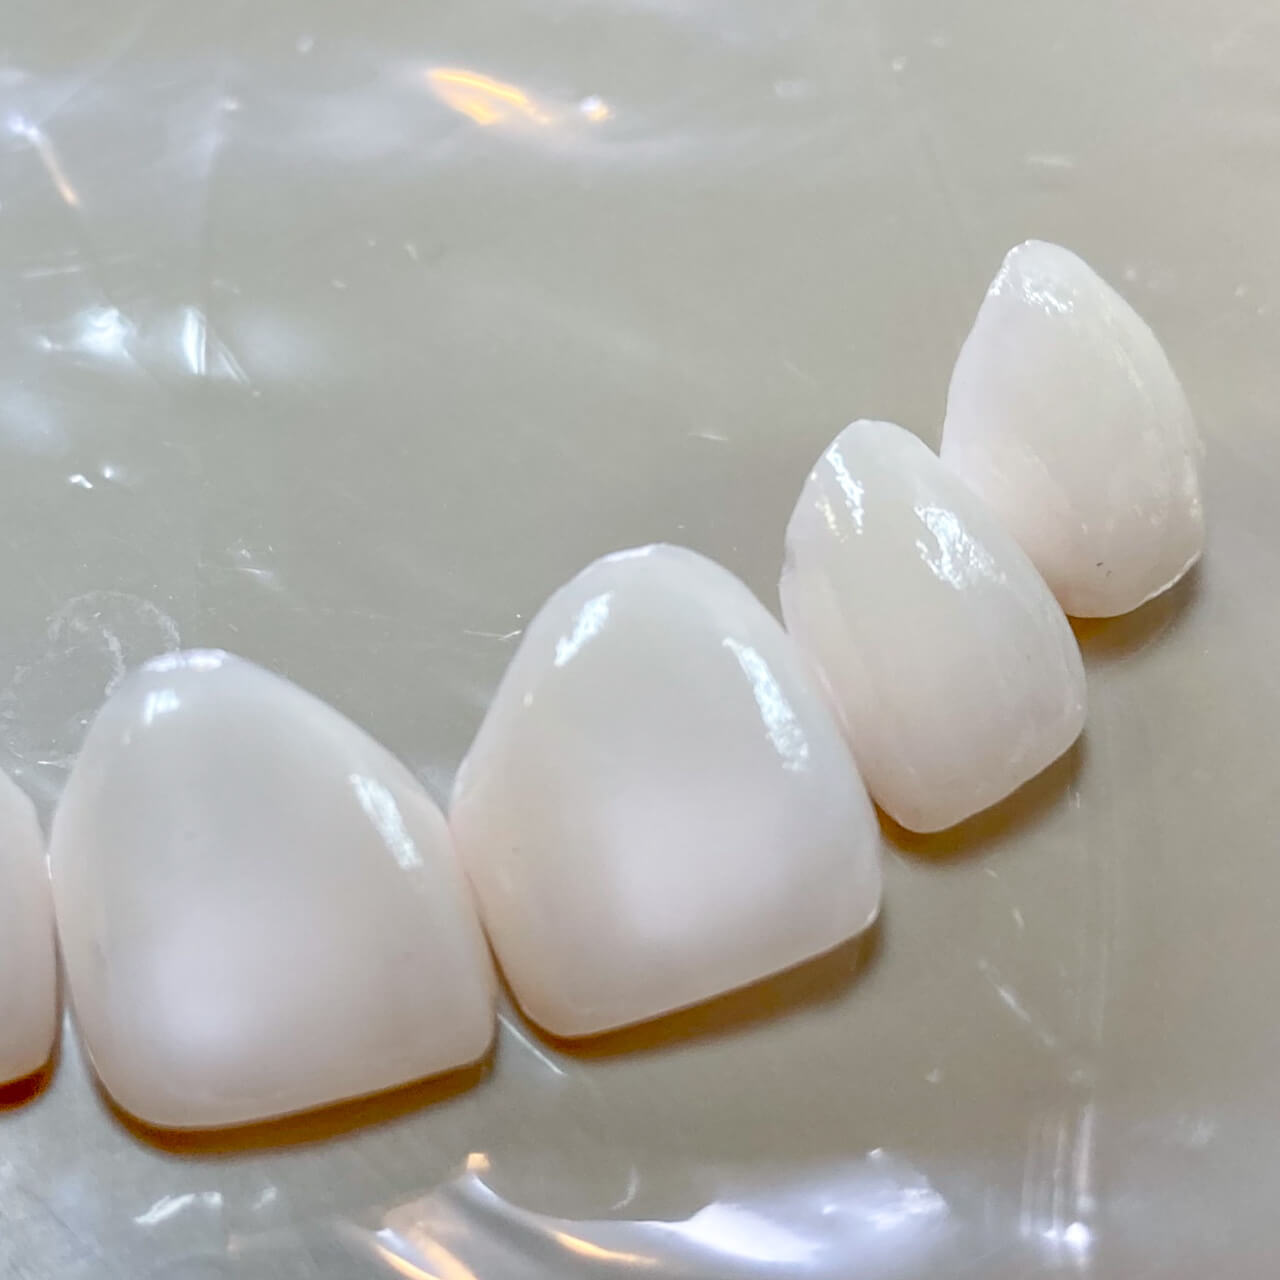 A dental model showing what veneers can do for your smile